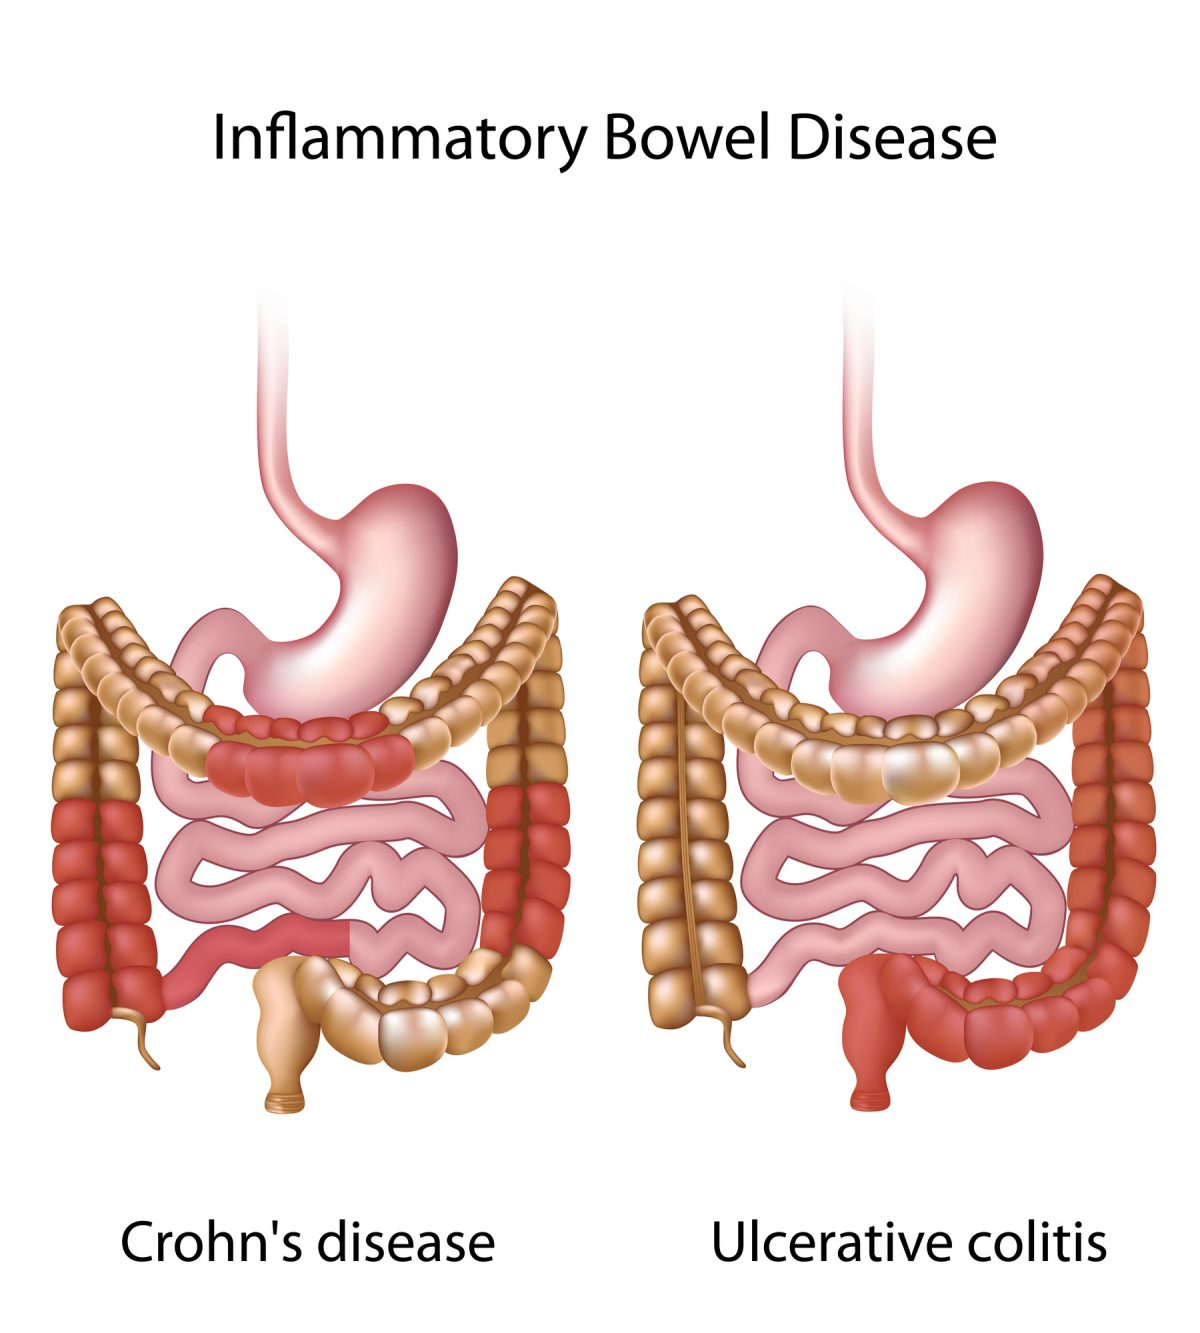 When Can Crohn's Disease Require Colon and Rectal Surgery